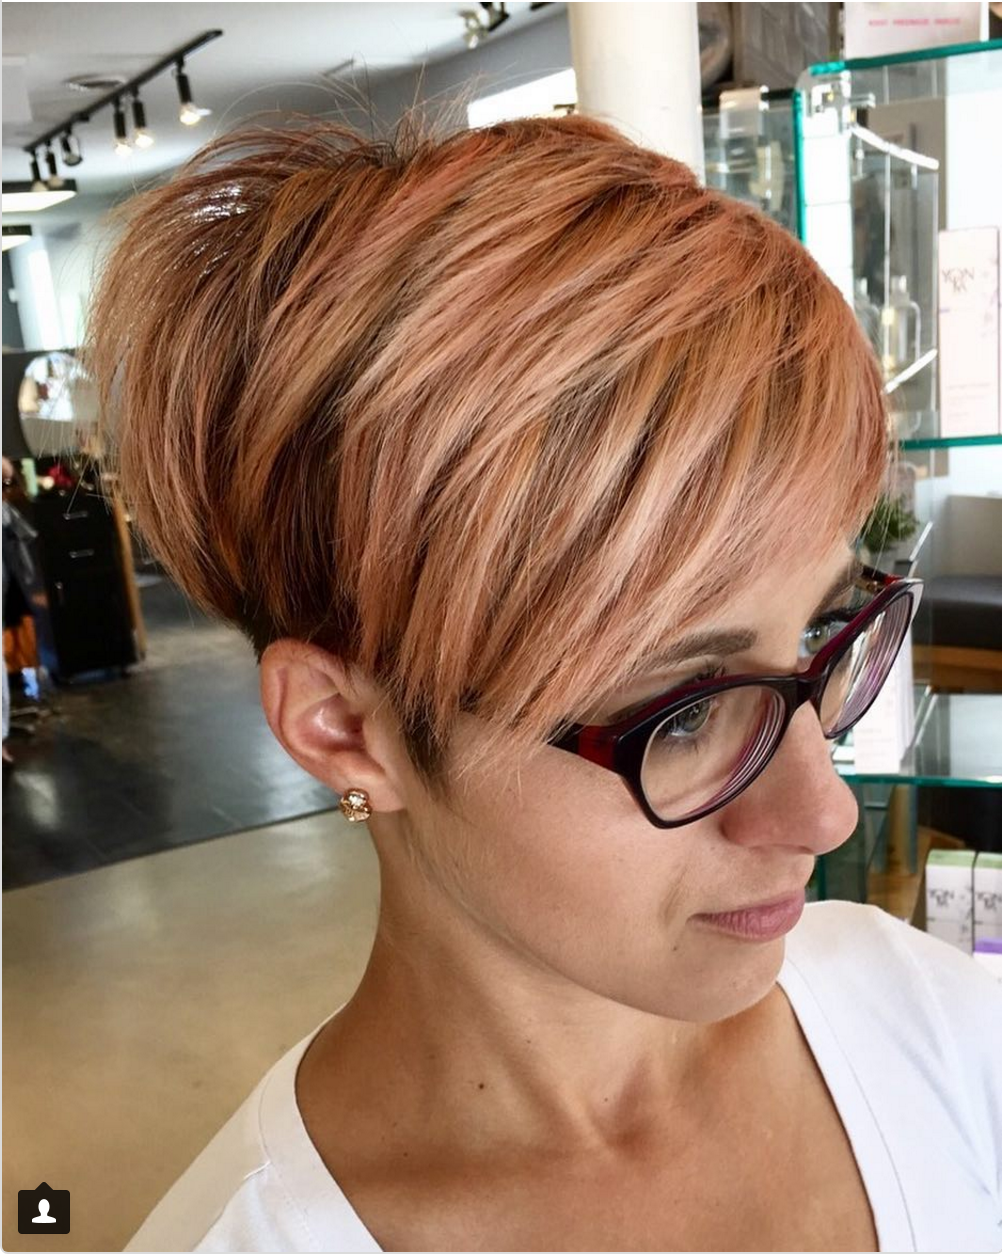 rose gold hair ideas rose gold hair latest hair color and gold